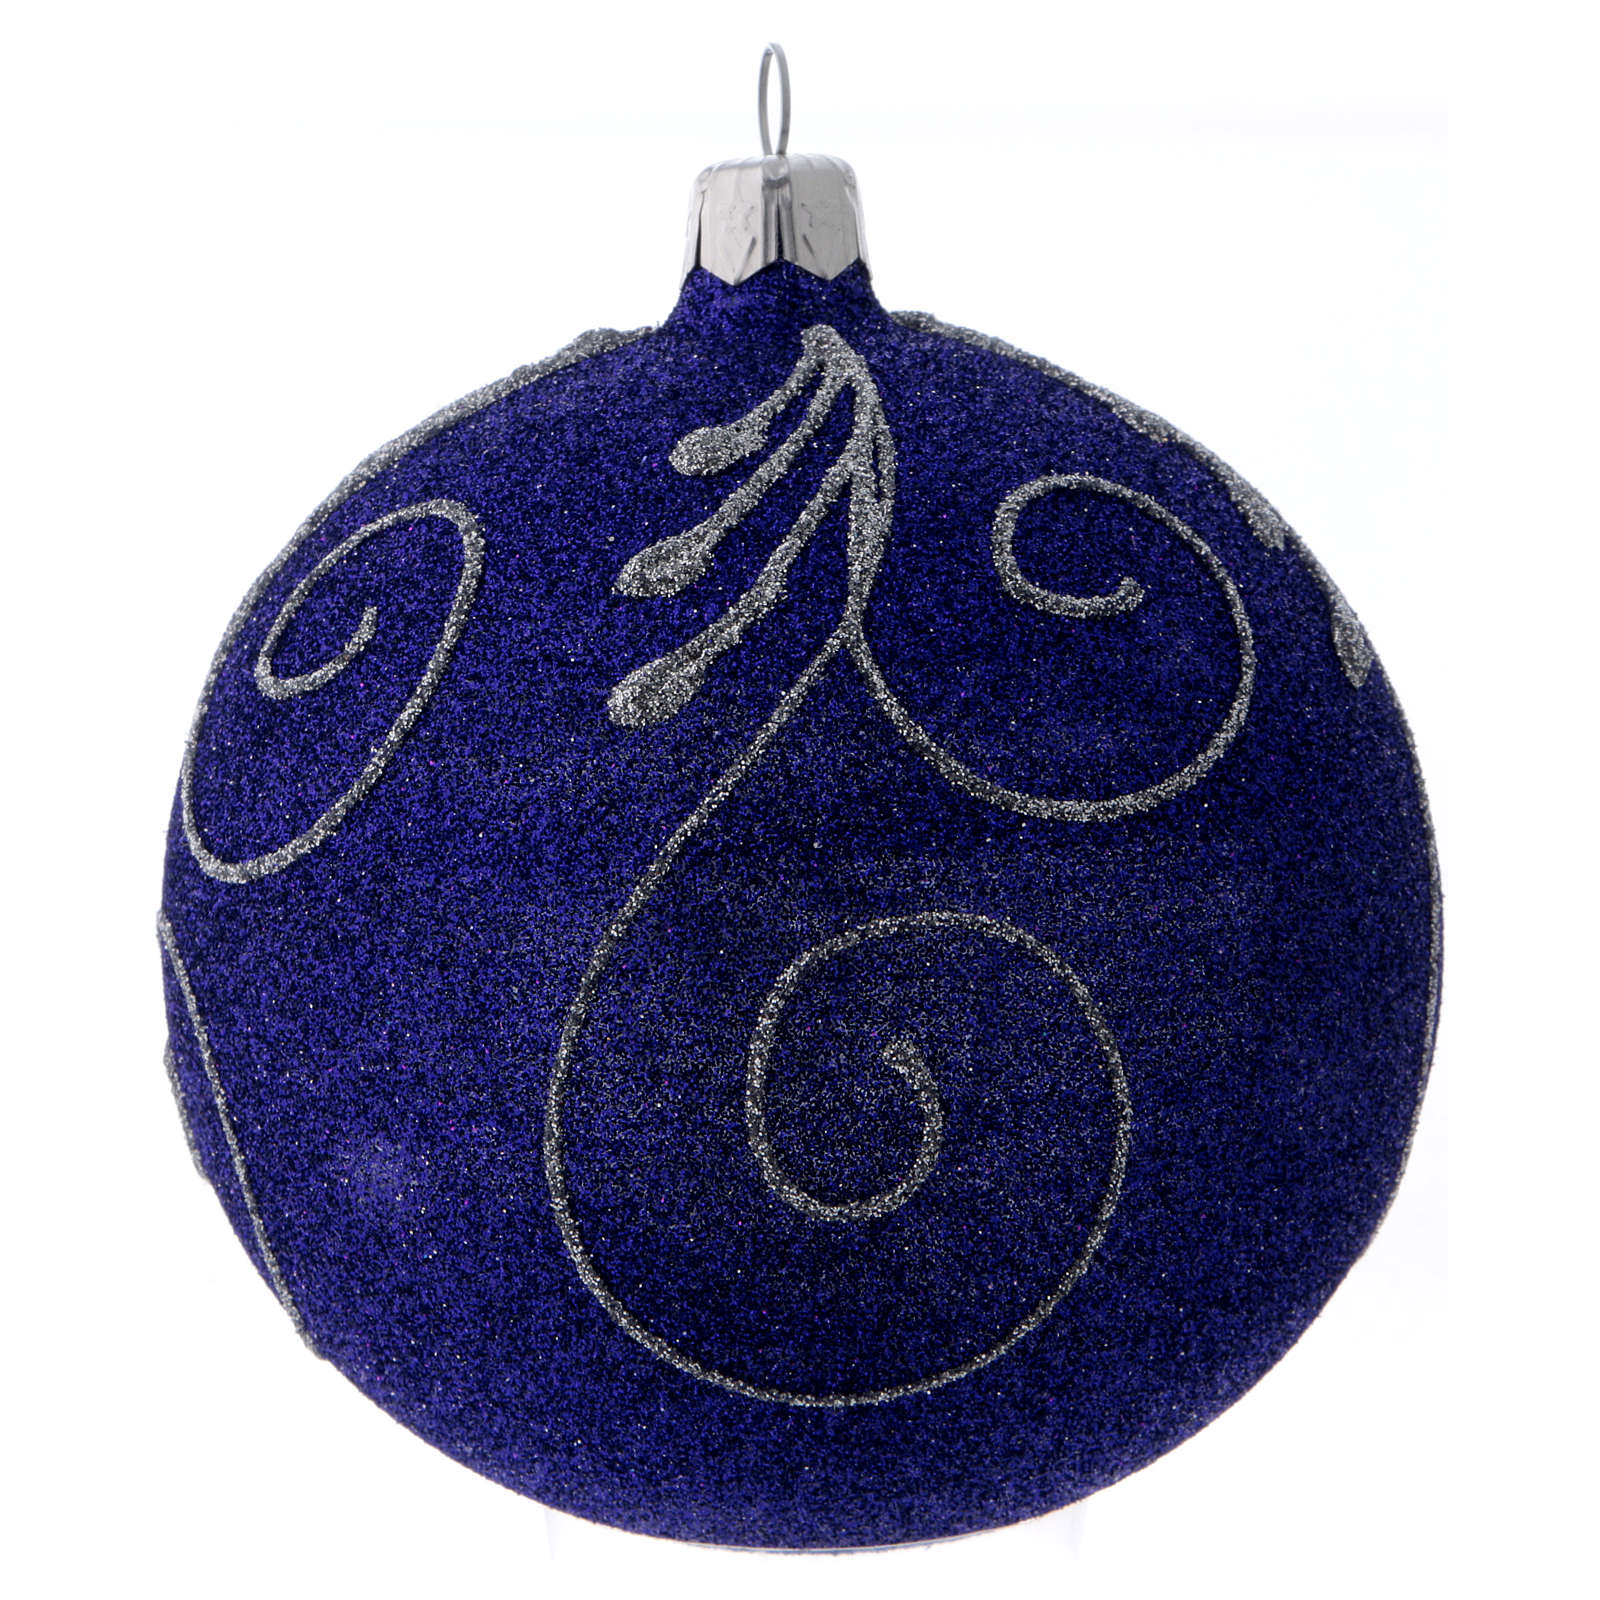 Christmas ball in glittery violet glass with silver decorations 100 mm 4